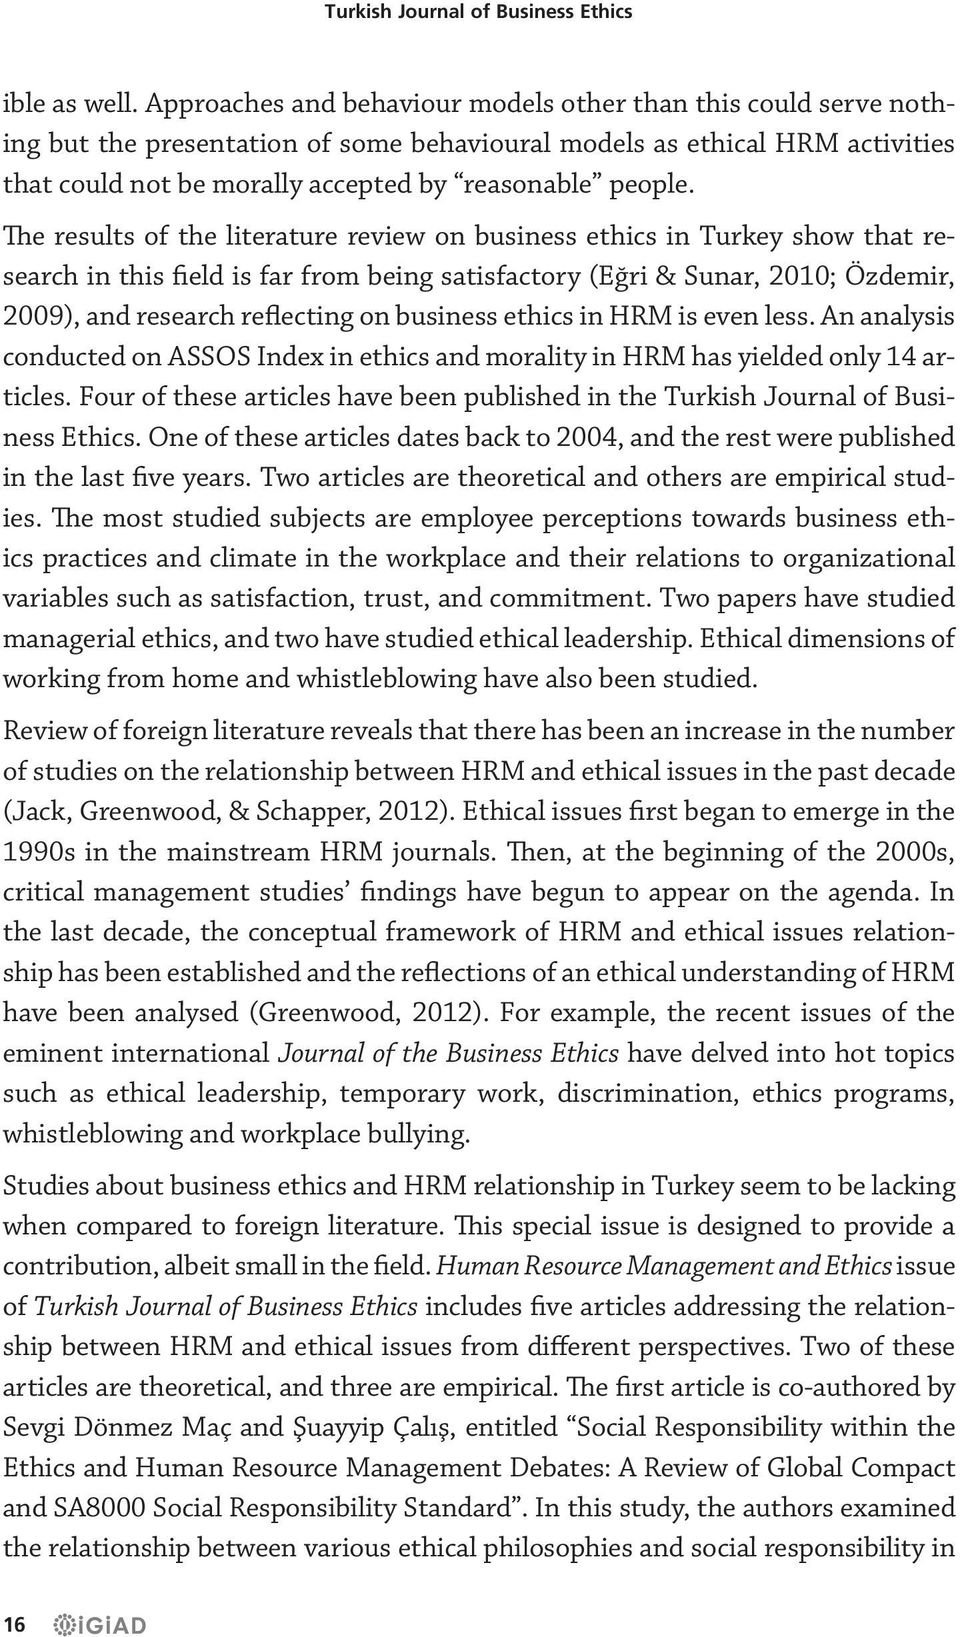 The results of the literature review on business ethics in Turkey show that research in this field is far from being satisfactory (Eğri & Sunar, 2010; Özdemir, 2009), and research reflecting on